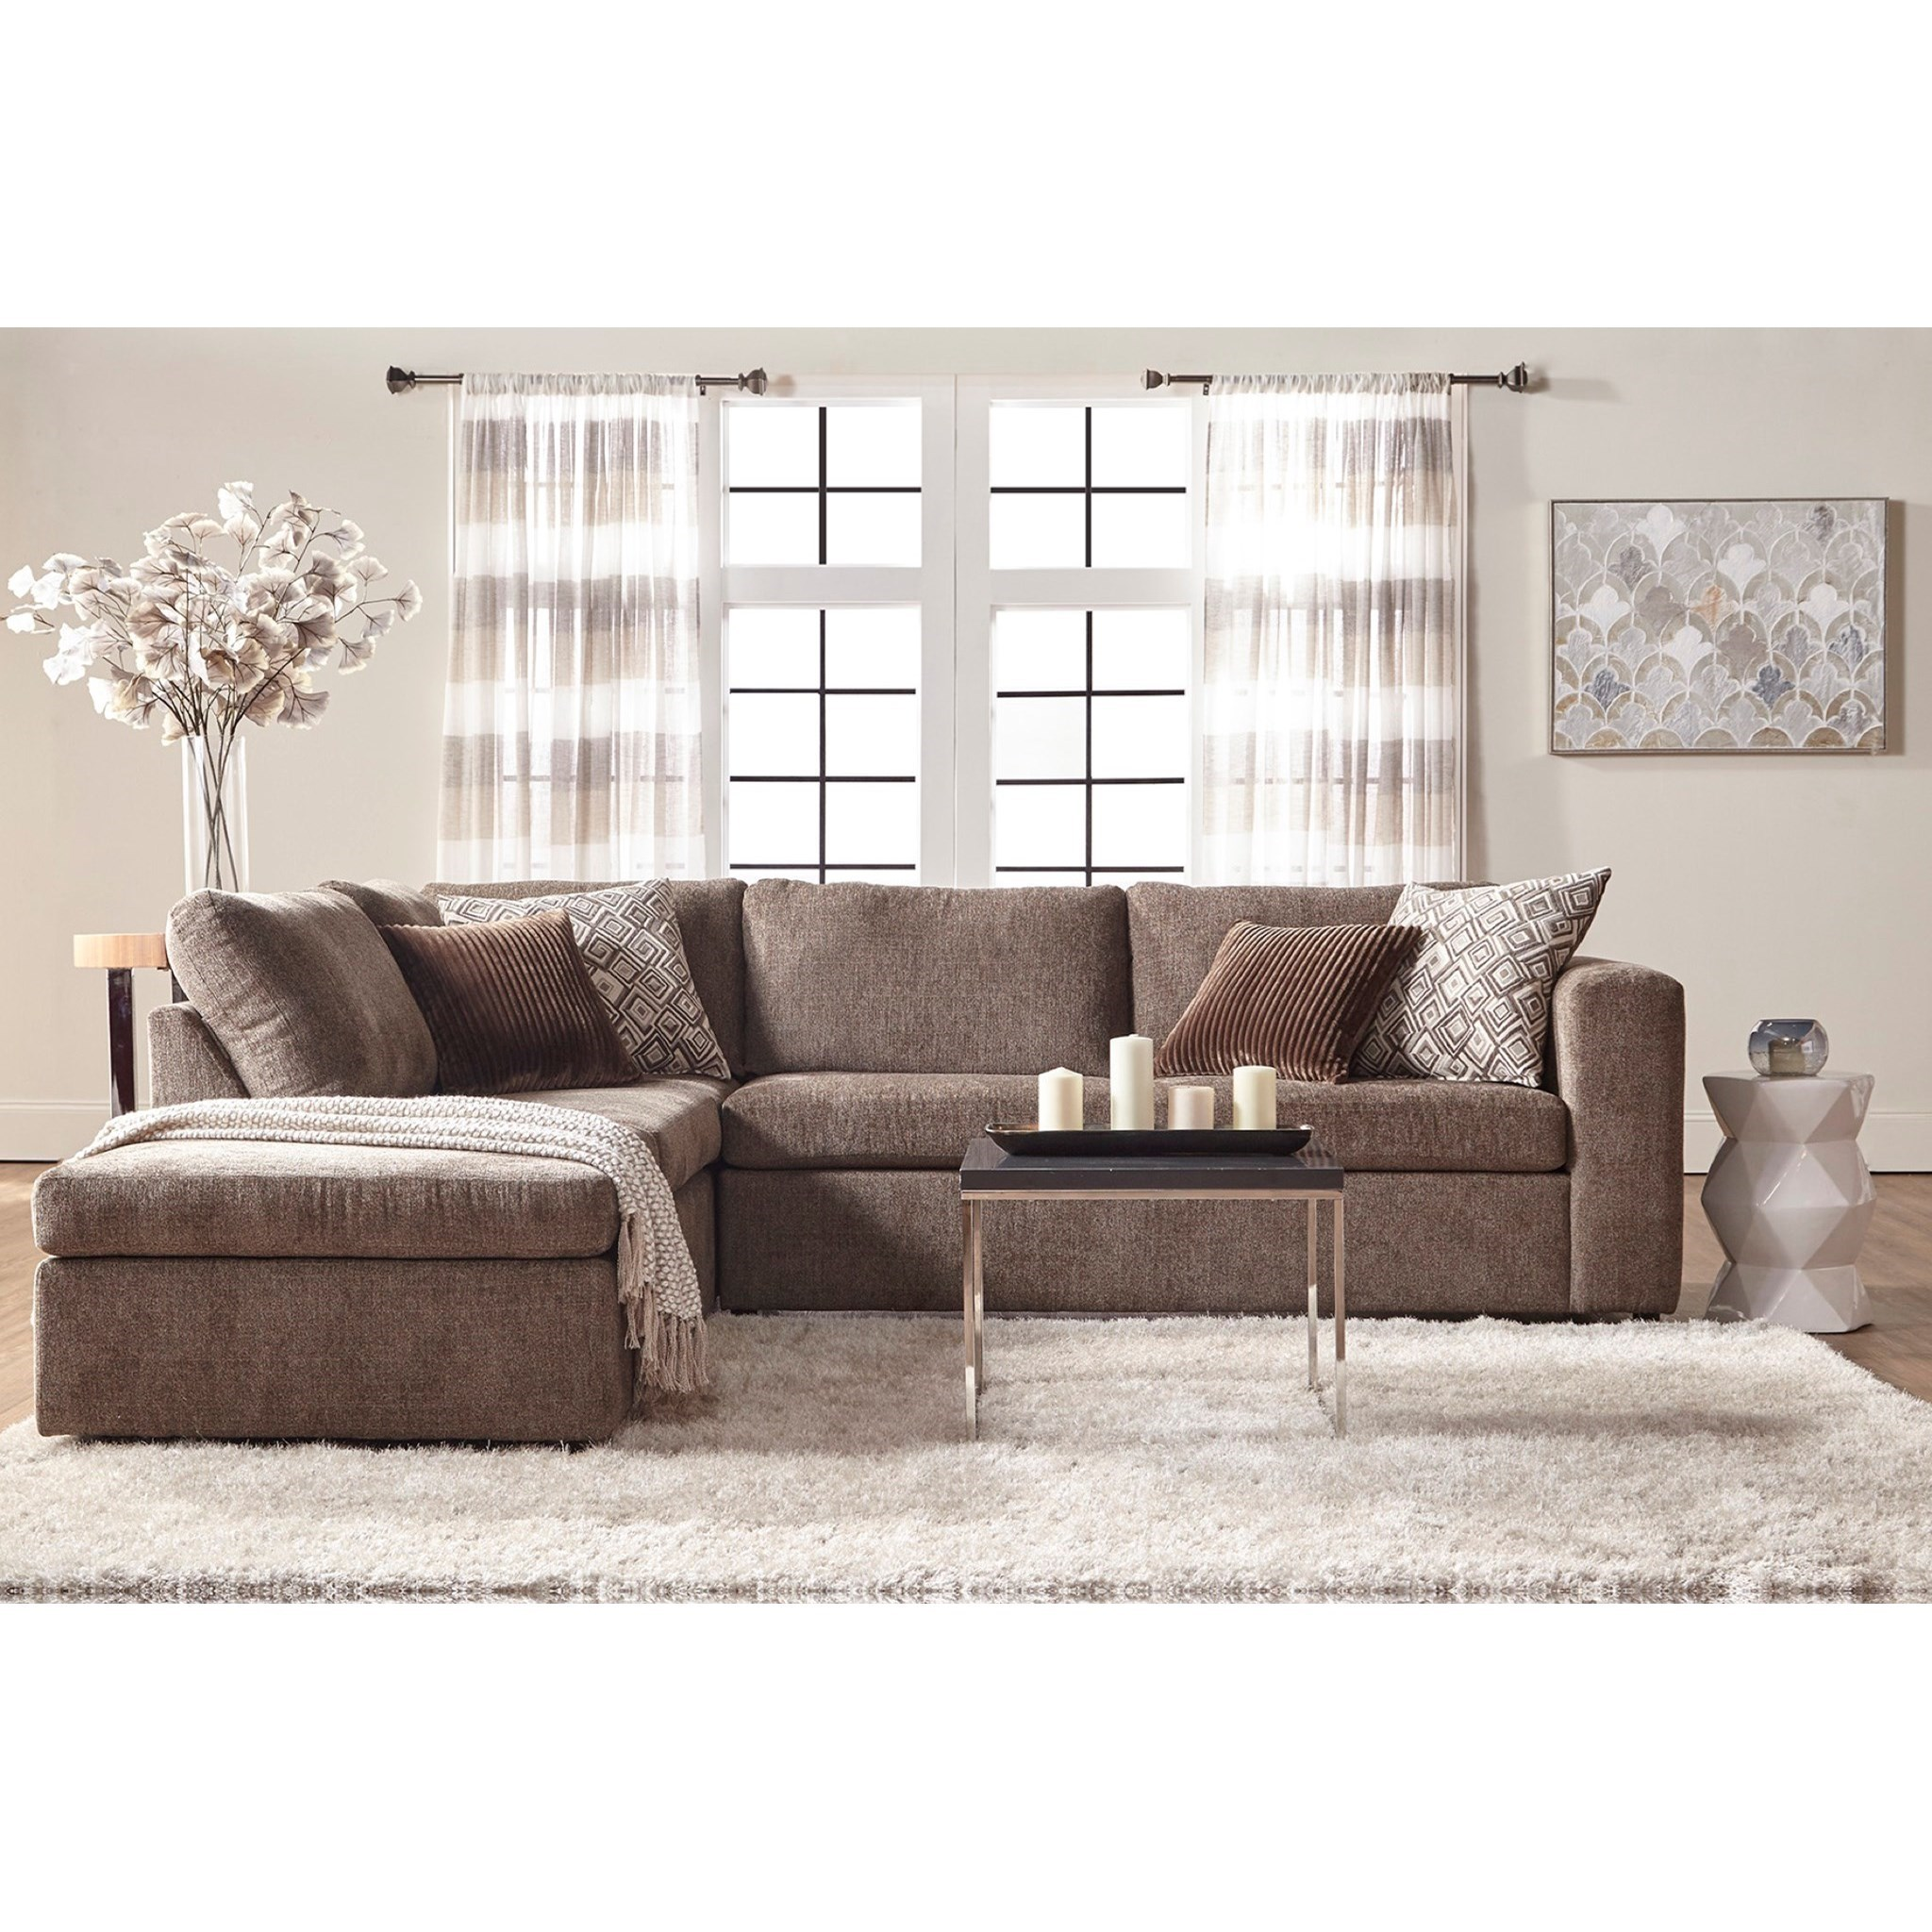 Angora Sectional Sofa With Chaise